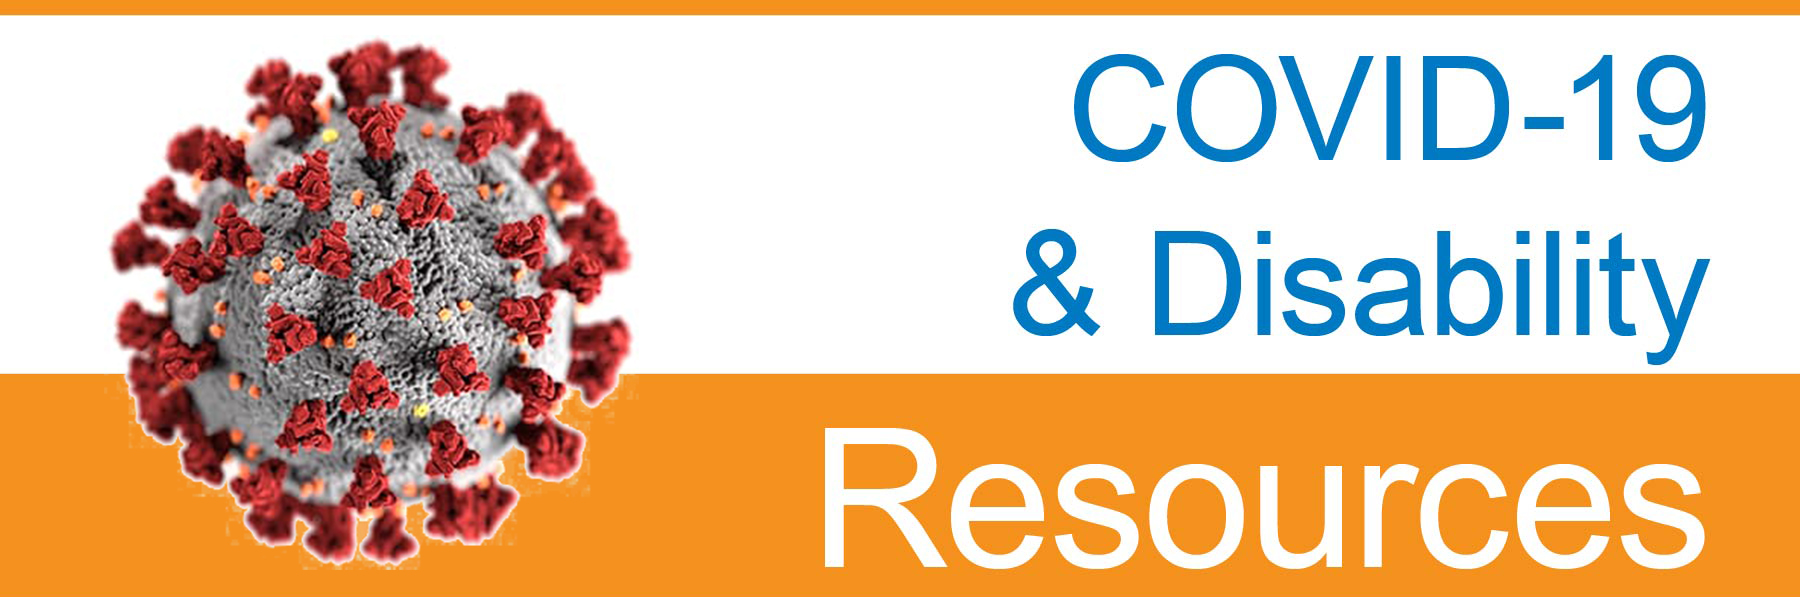 COVID-19 & Disability Resources